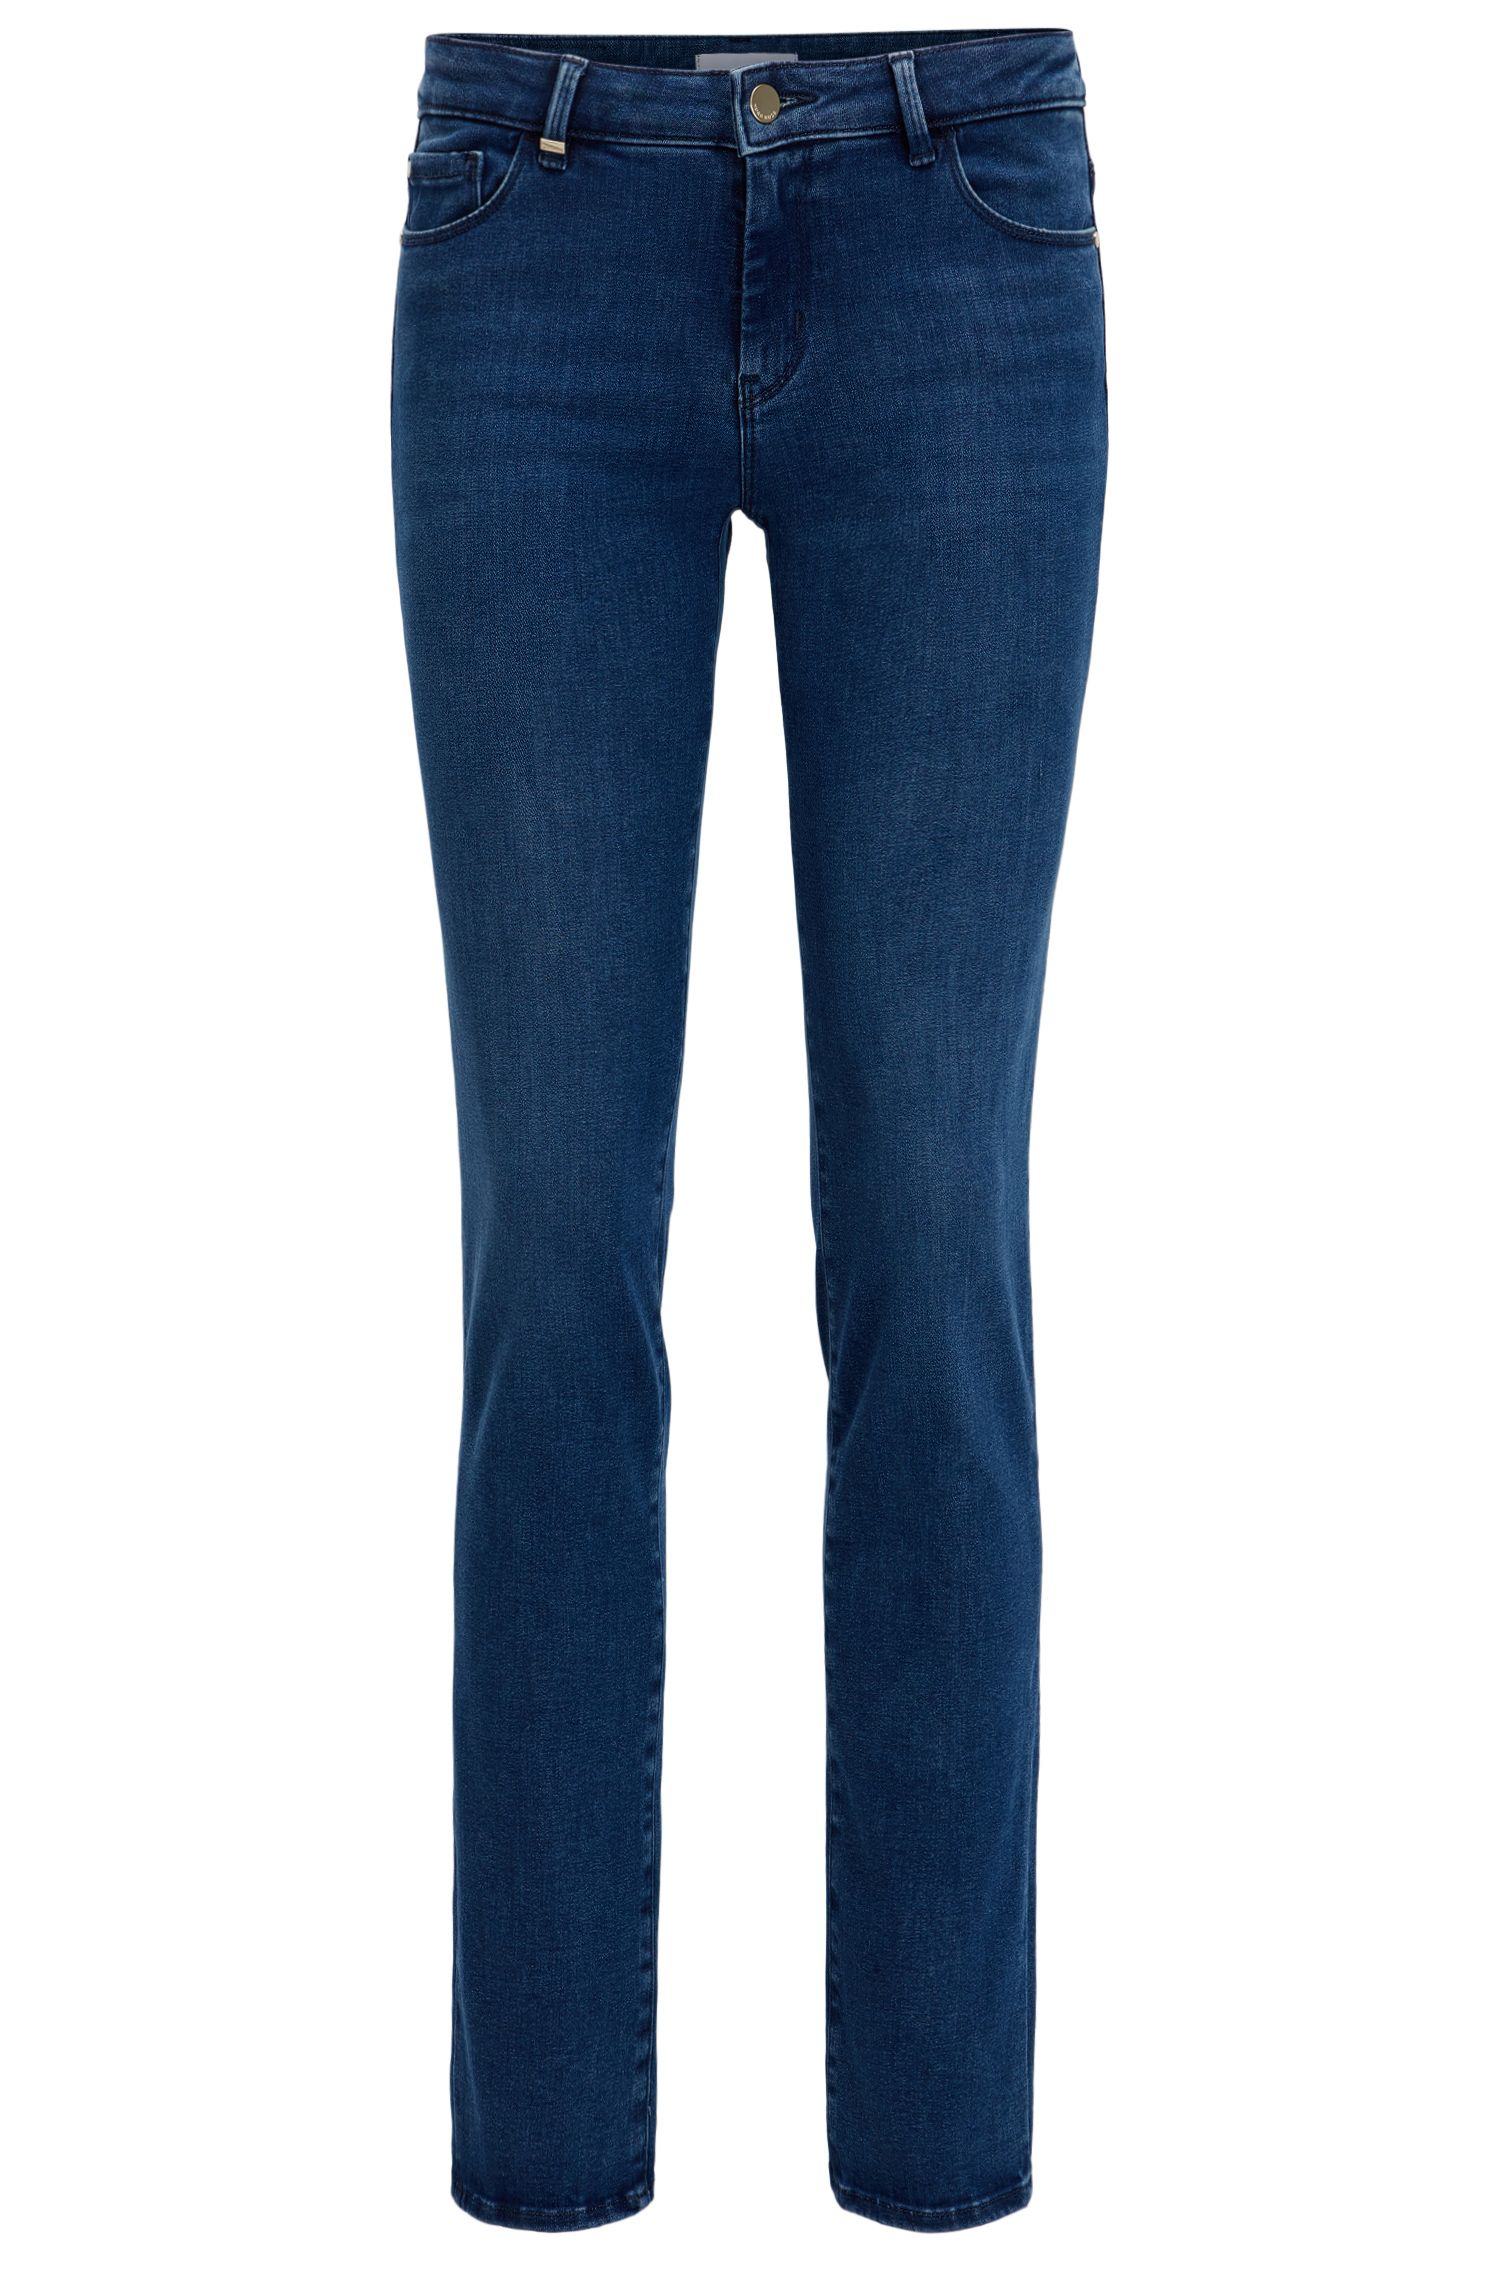 Regular-fit jeans van felblauwe super-stretchdenim